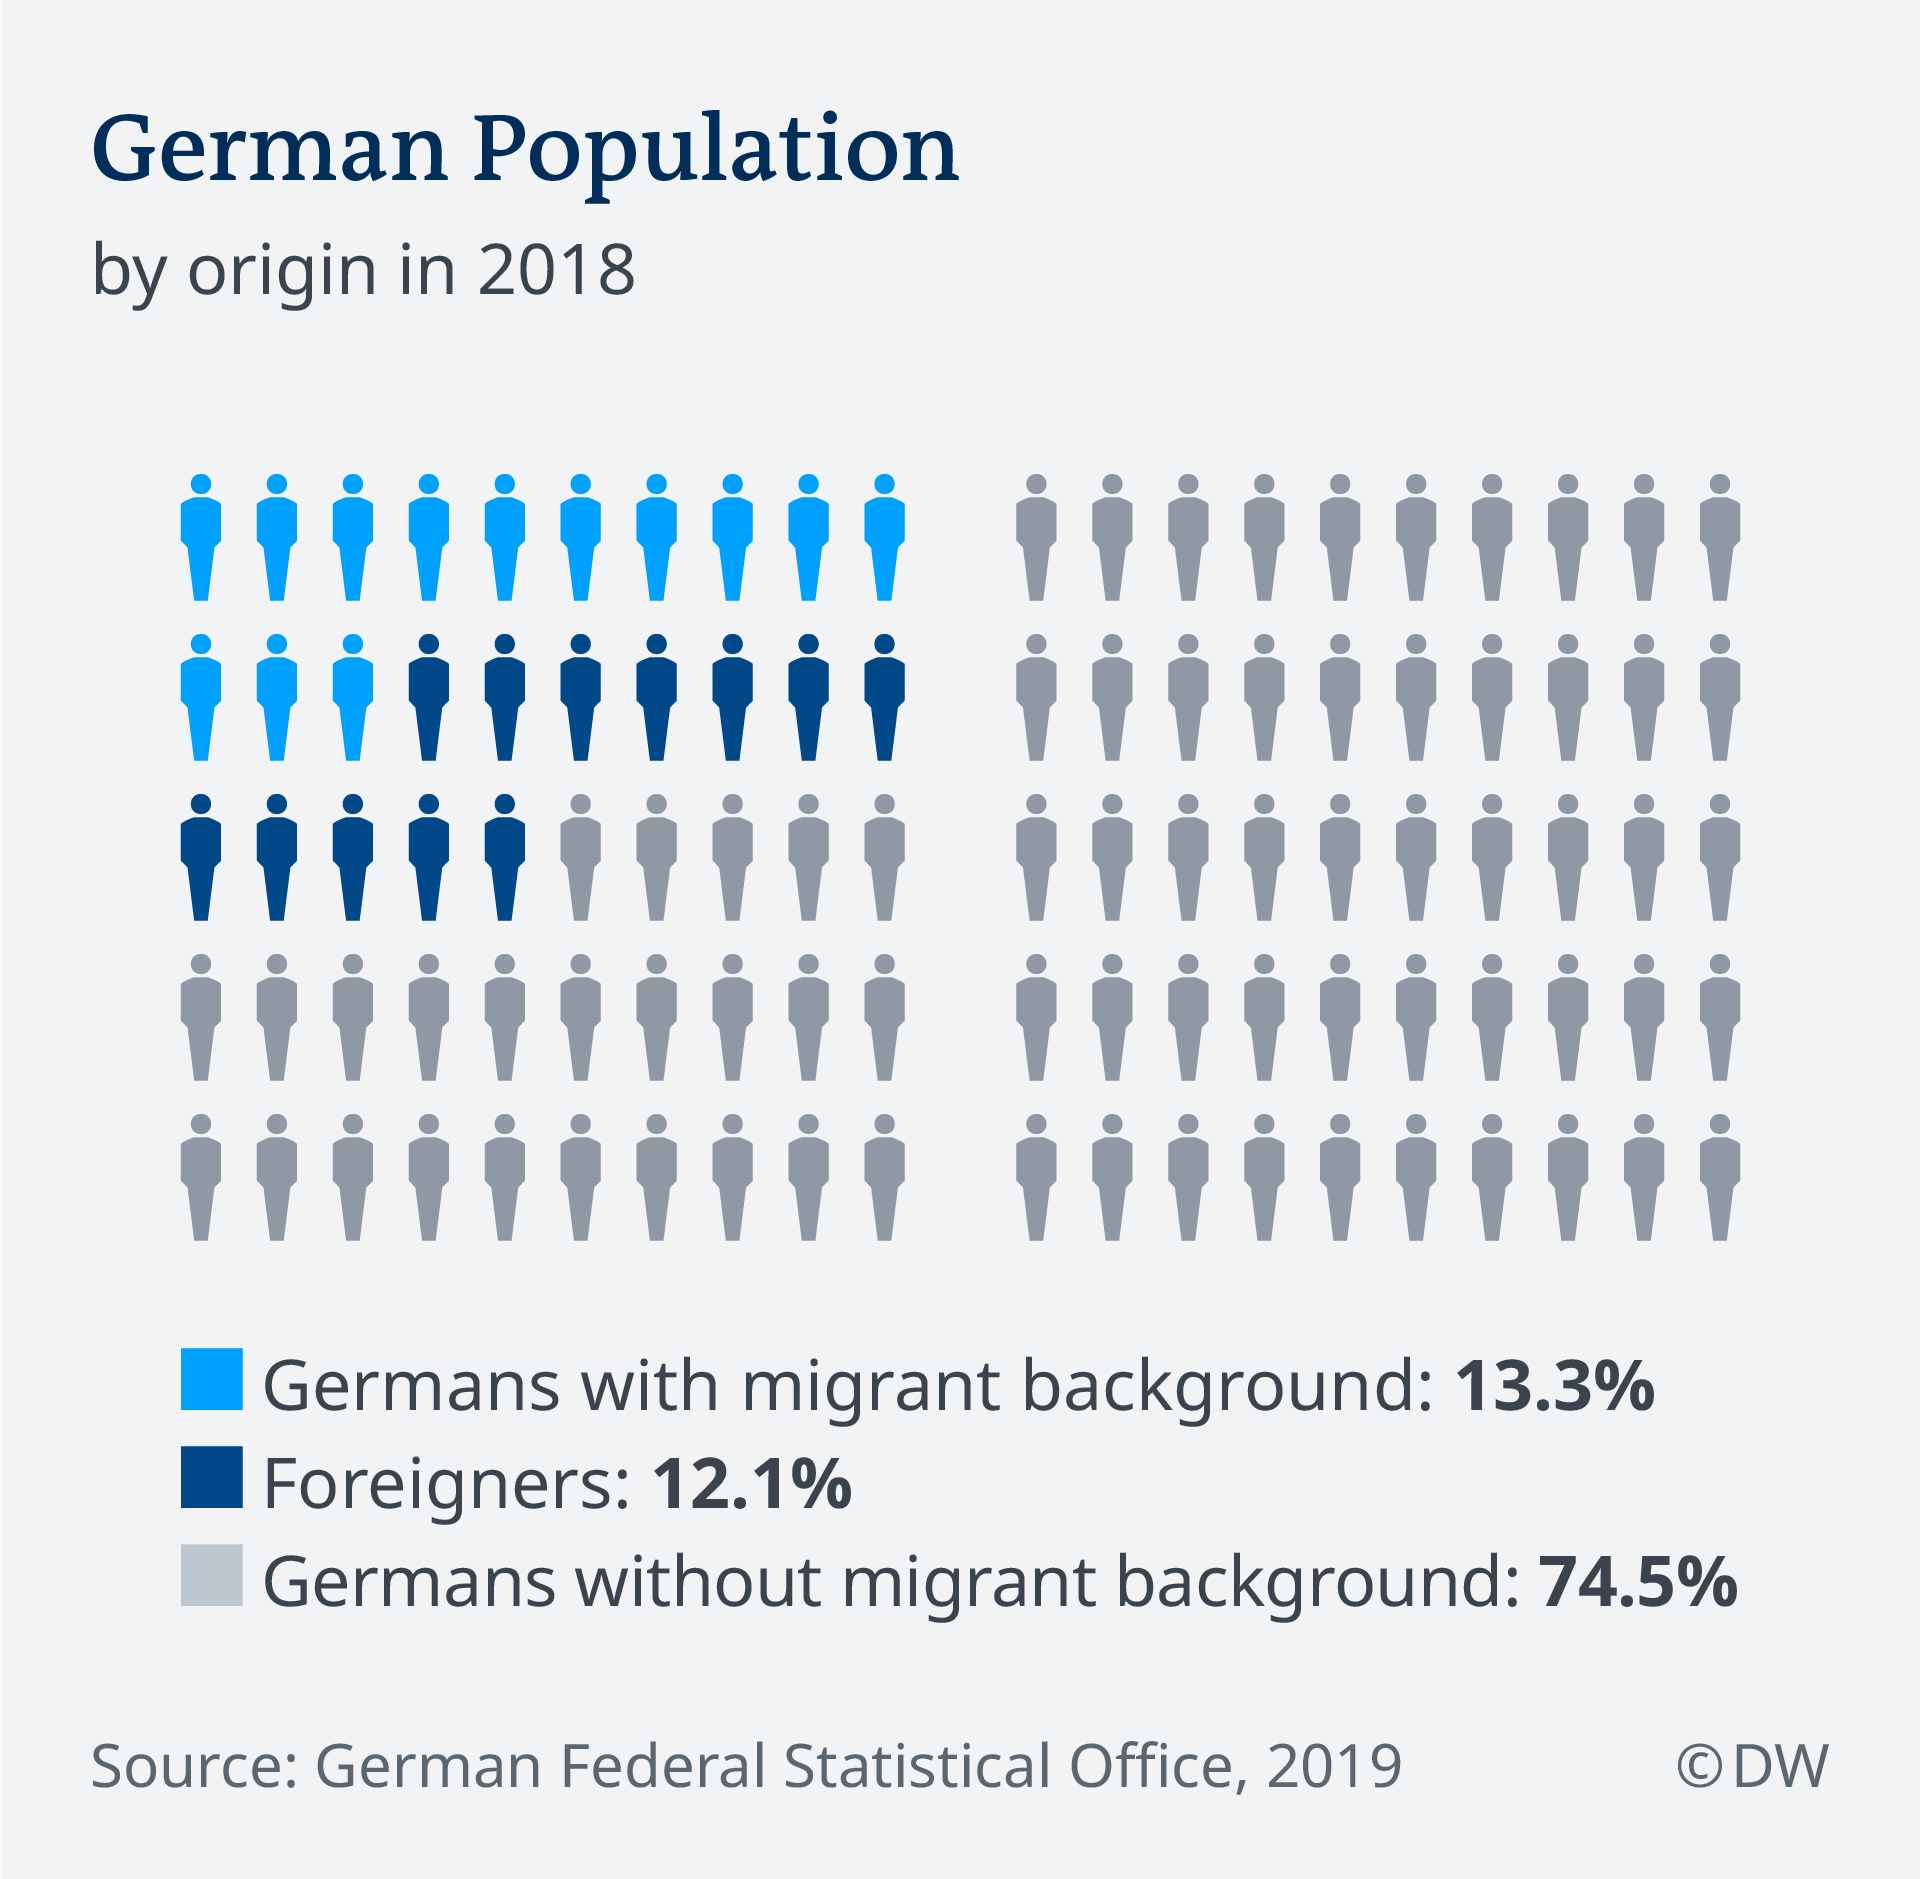 Graphic showing the distribution of the German population by origin